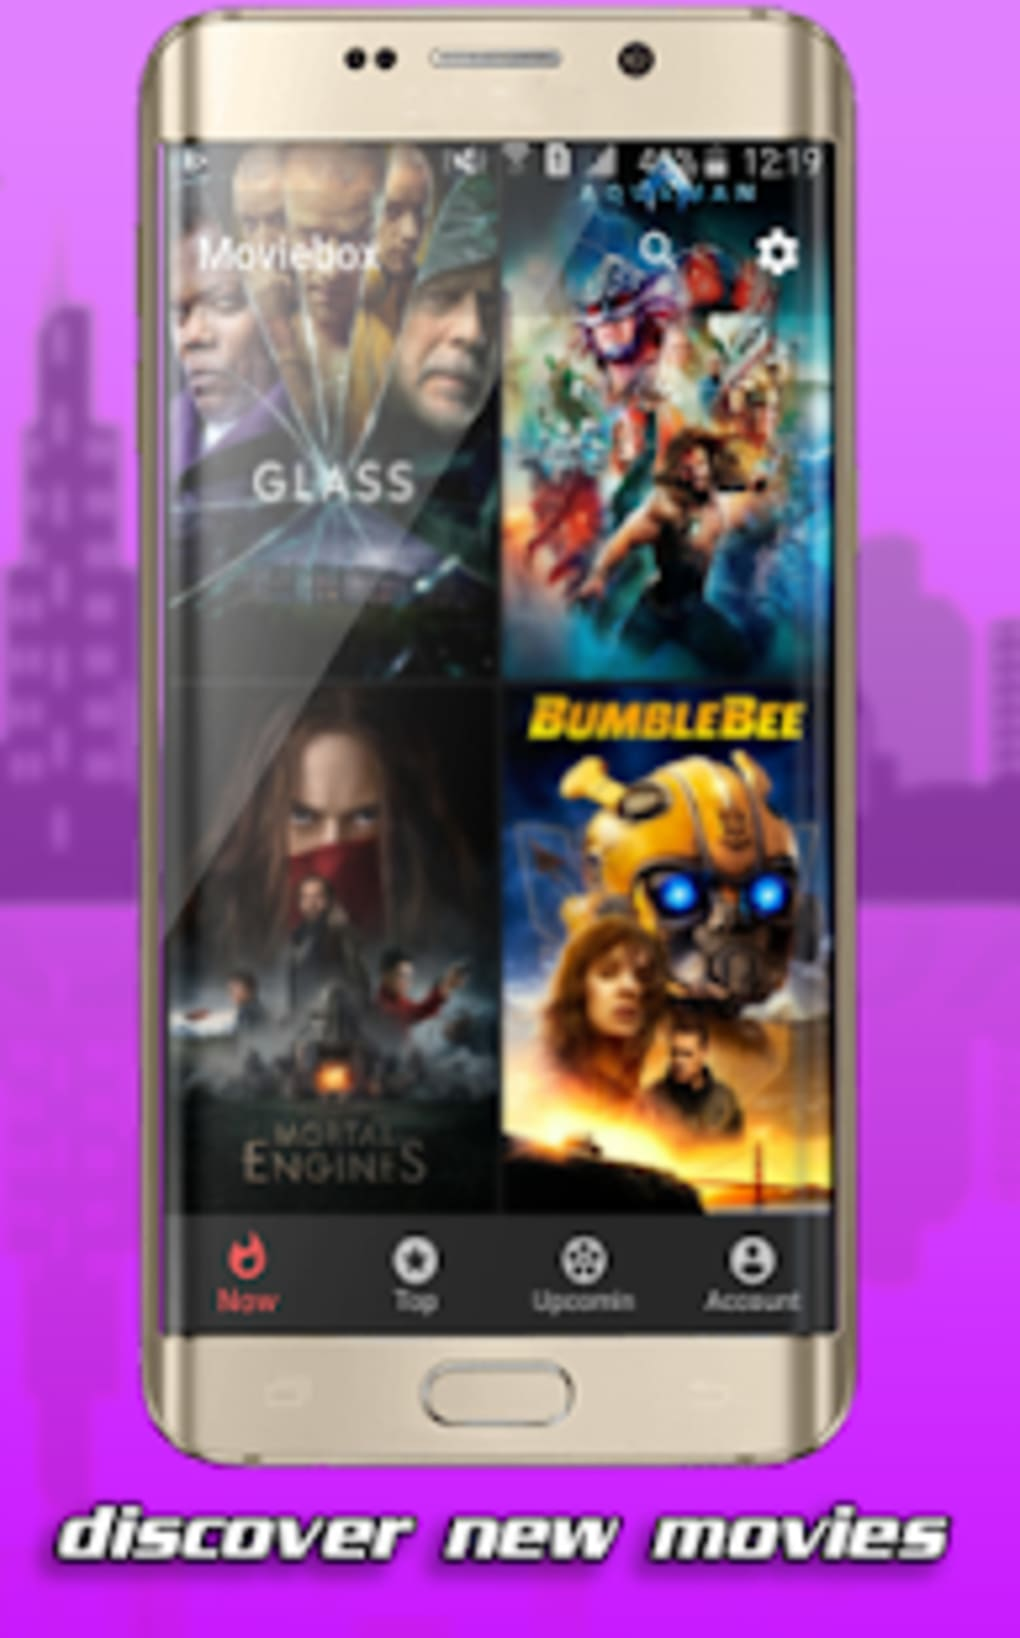 android apps for downloading free movies